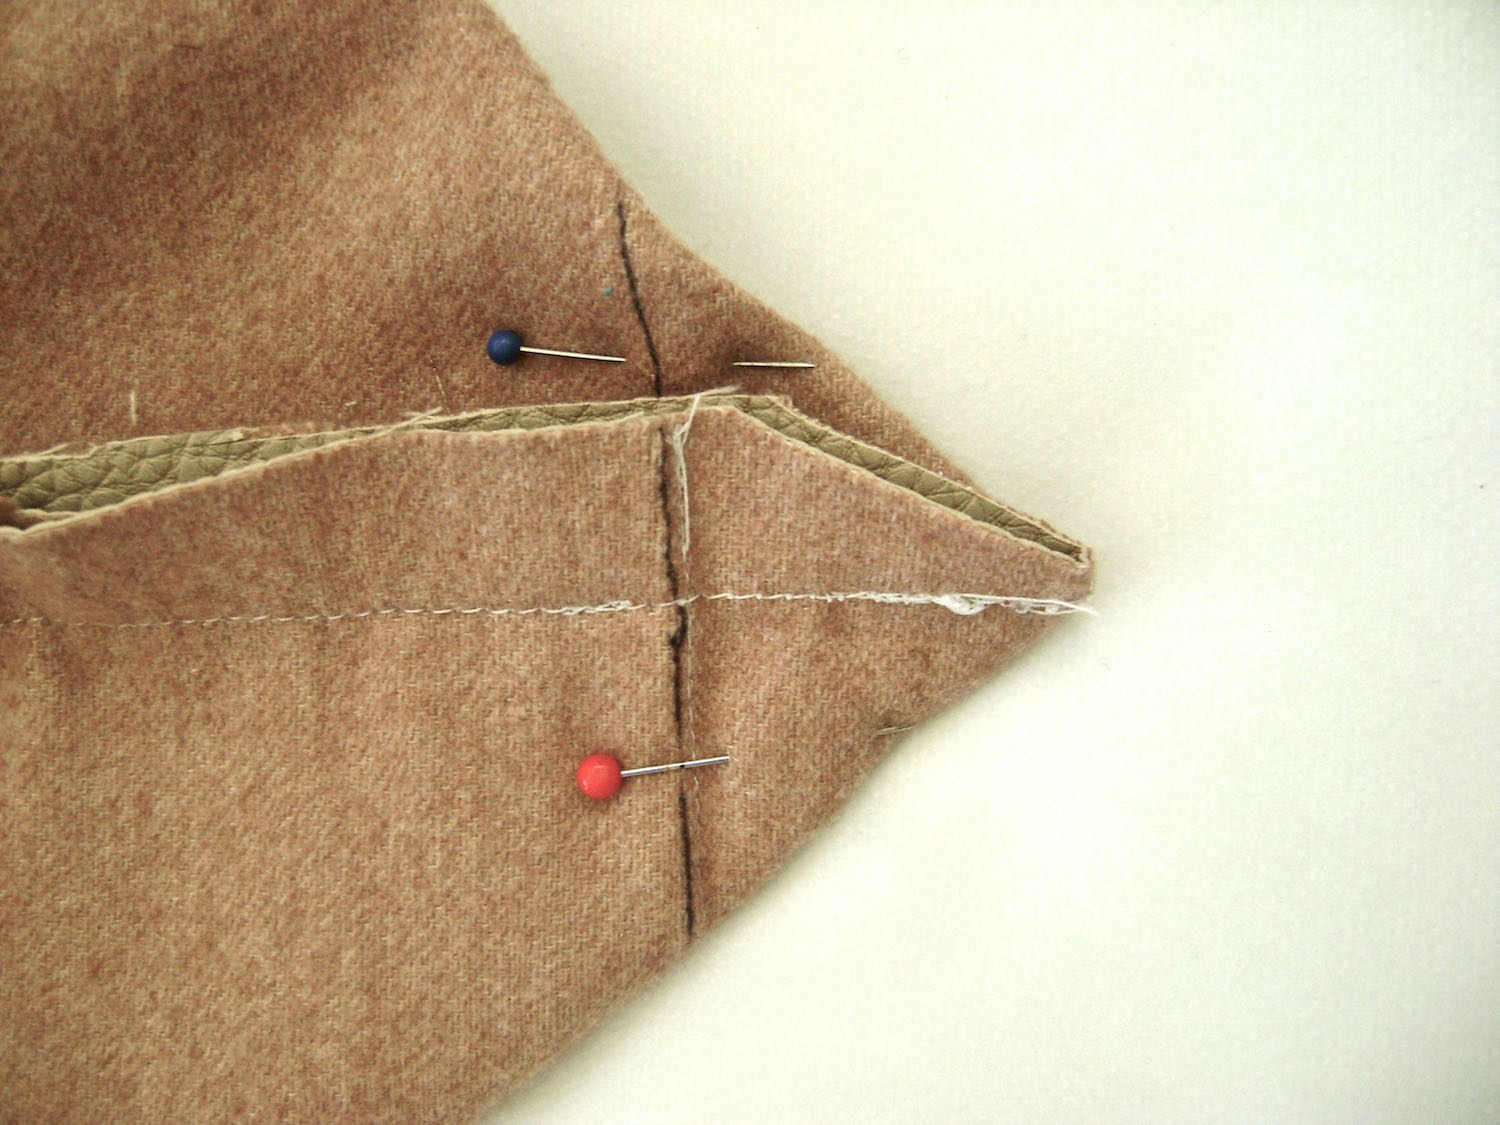 """step 13 - Spread out the bottom corners to form a point with 1.50"""" on each side of the seam line. Use a marker to define the line which should be 3"""" long. Sew across the line, and again to reinforce it."""